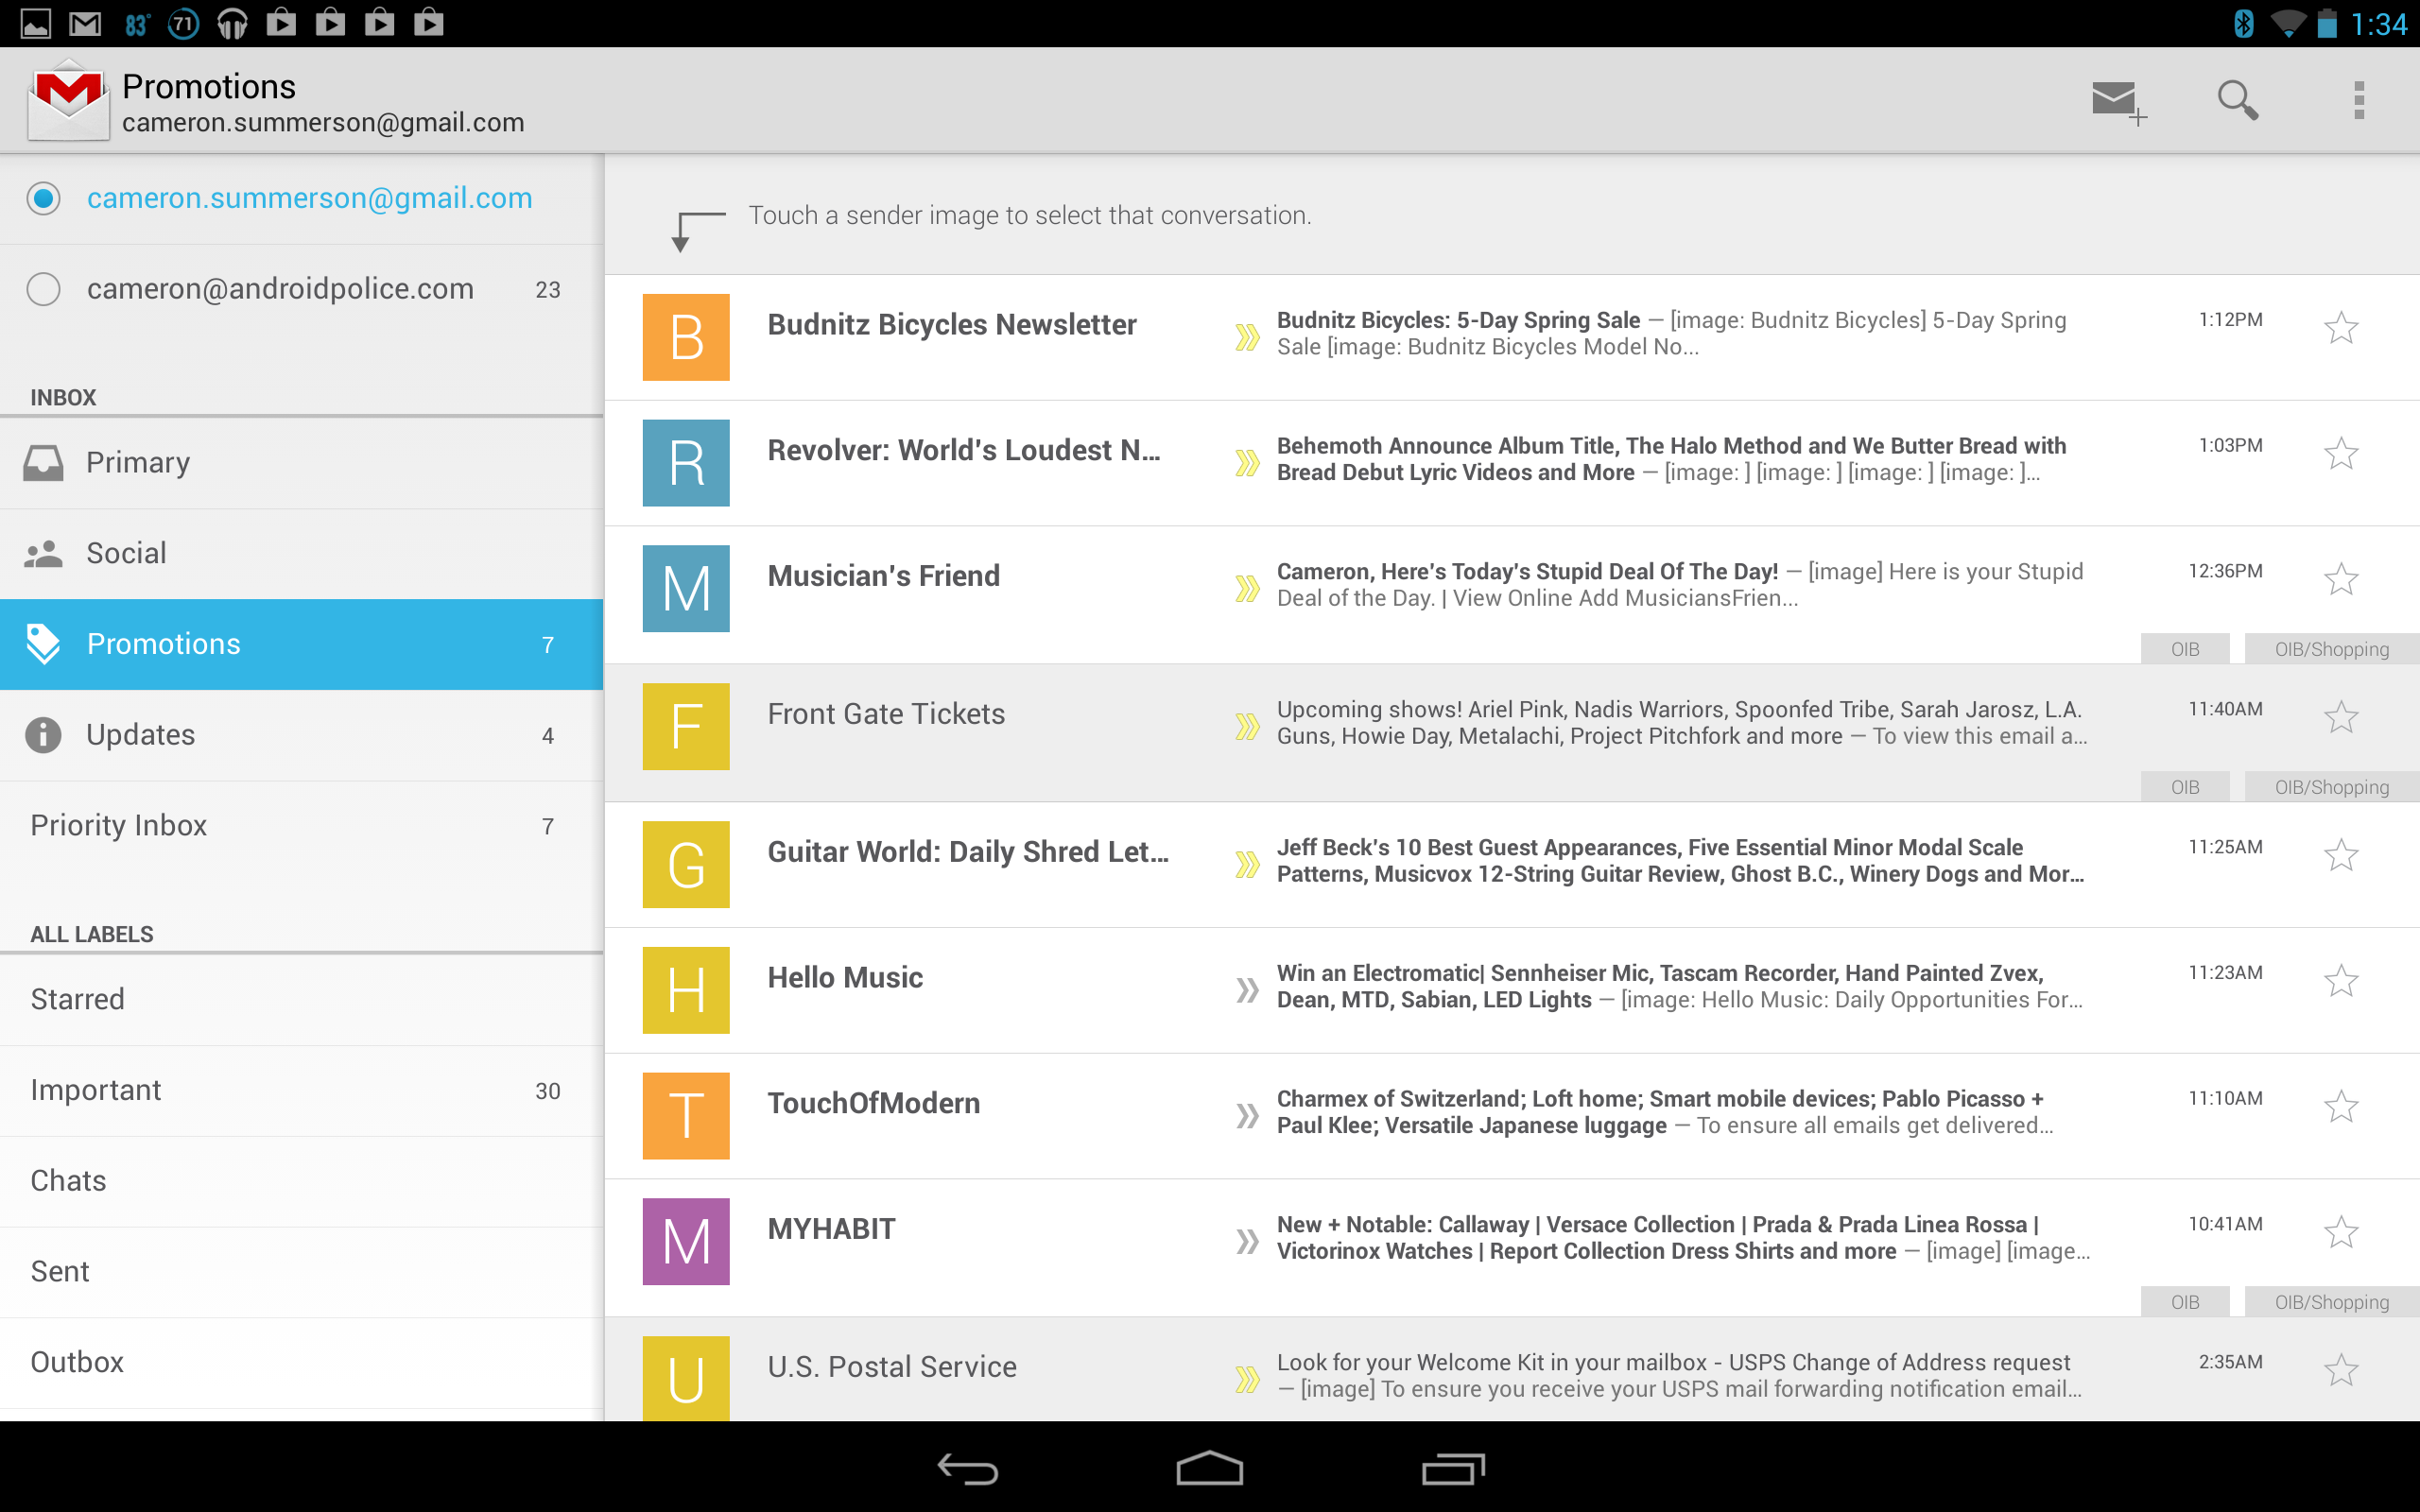 Download: New Gmail For Android v4.5 With Slide-Out Navigation And Brand New Inbox